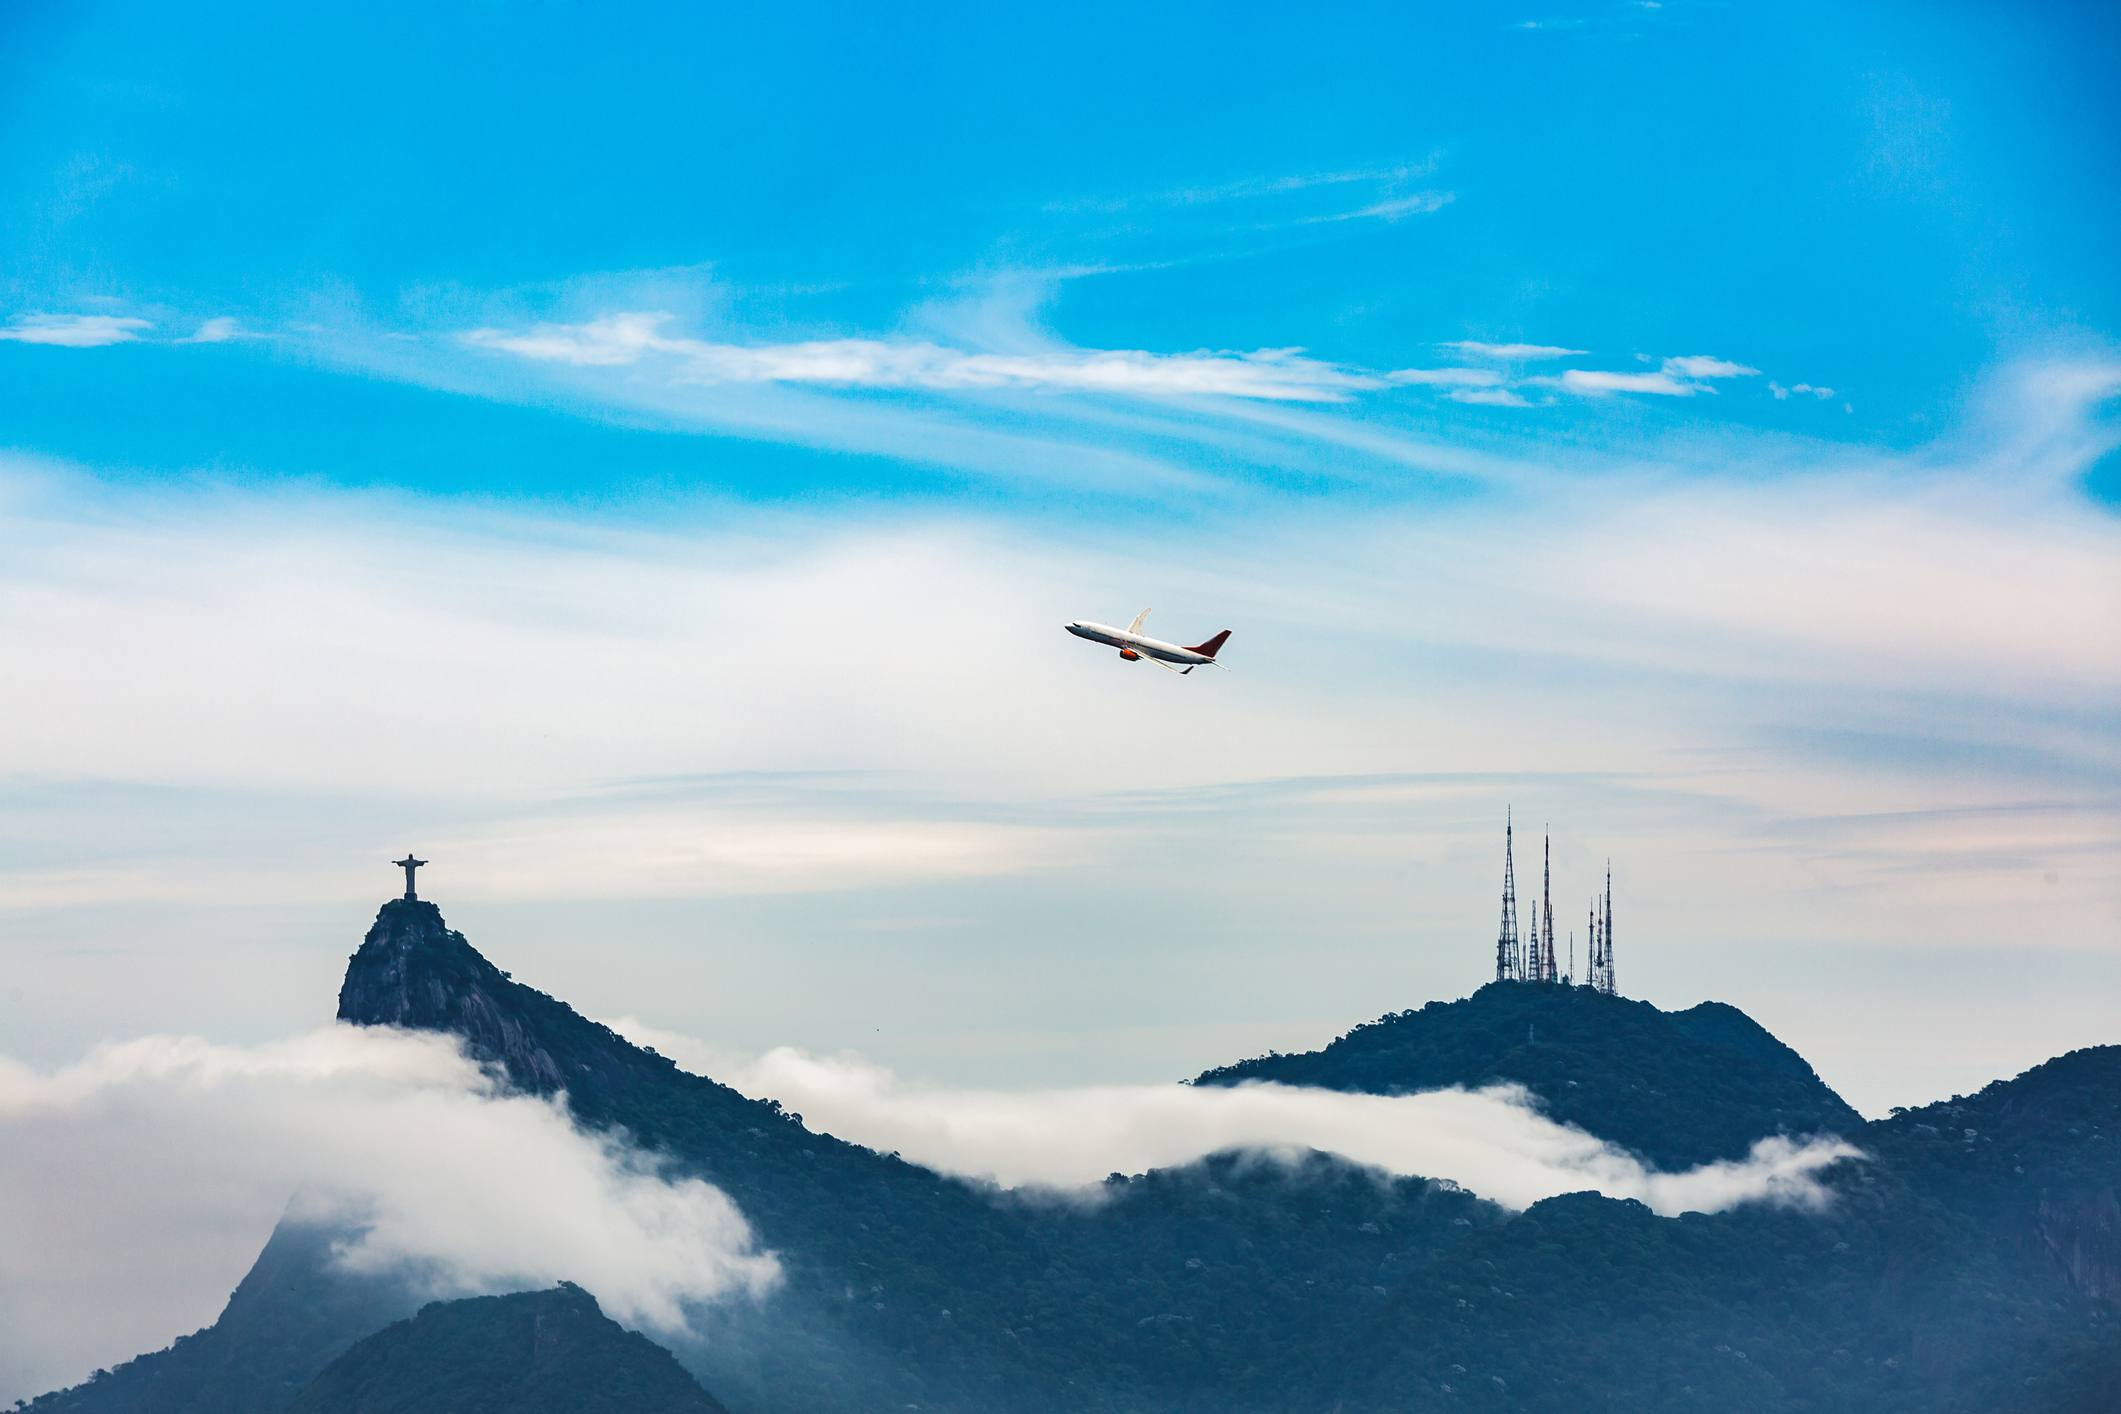 View of Cristo Redentor and airplane, Brazil